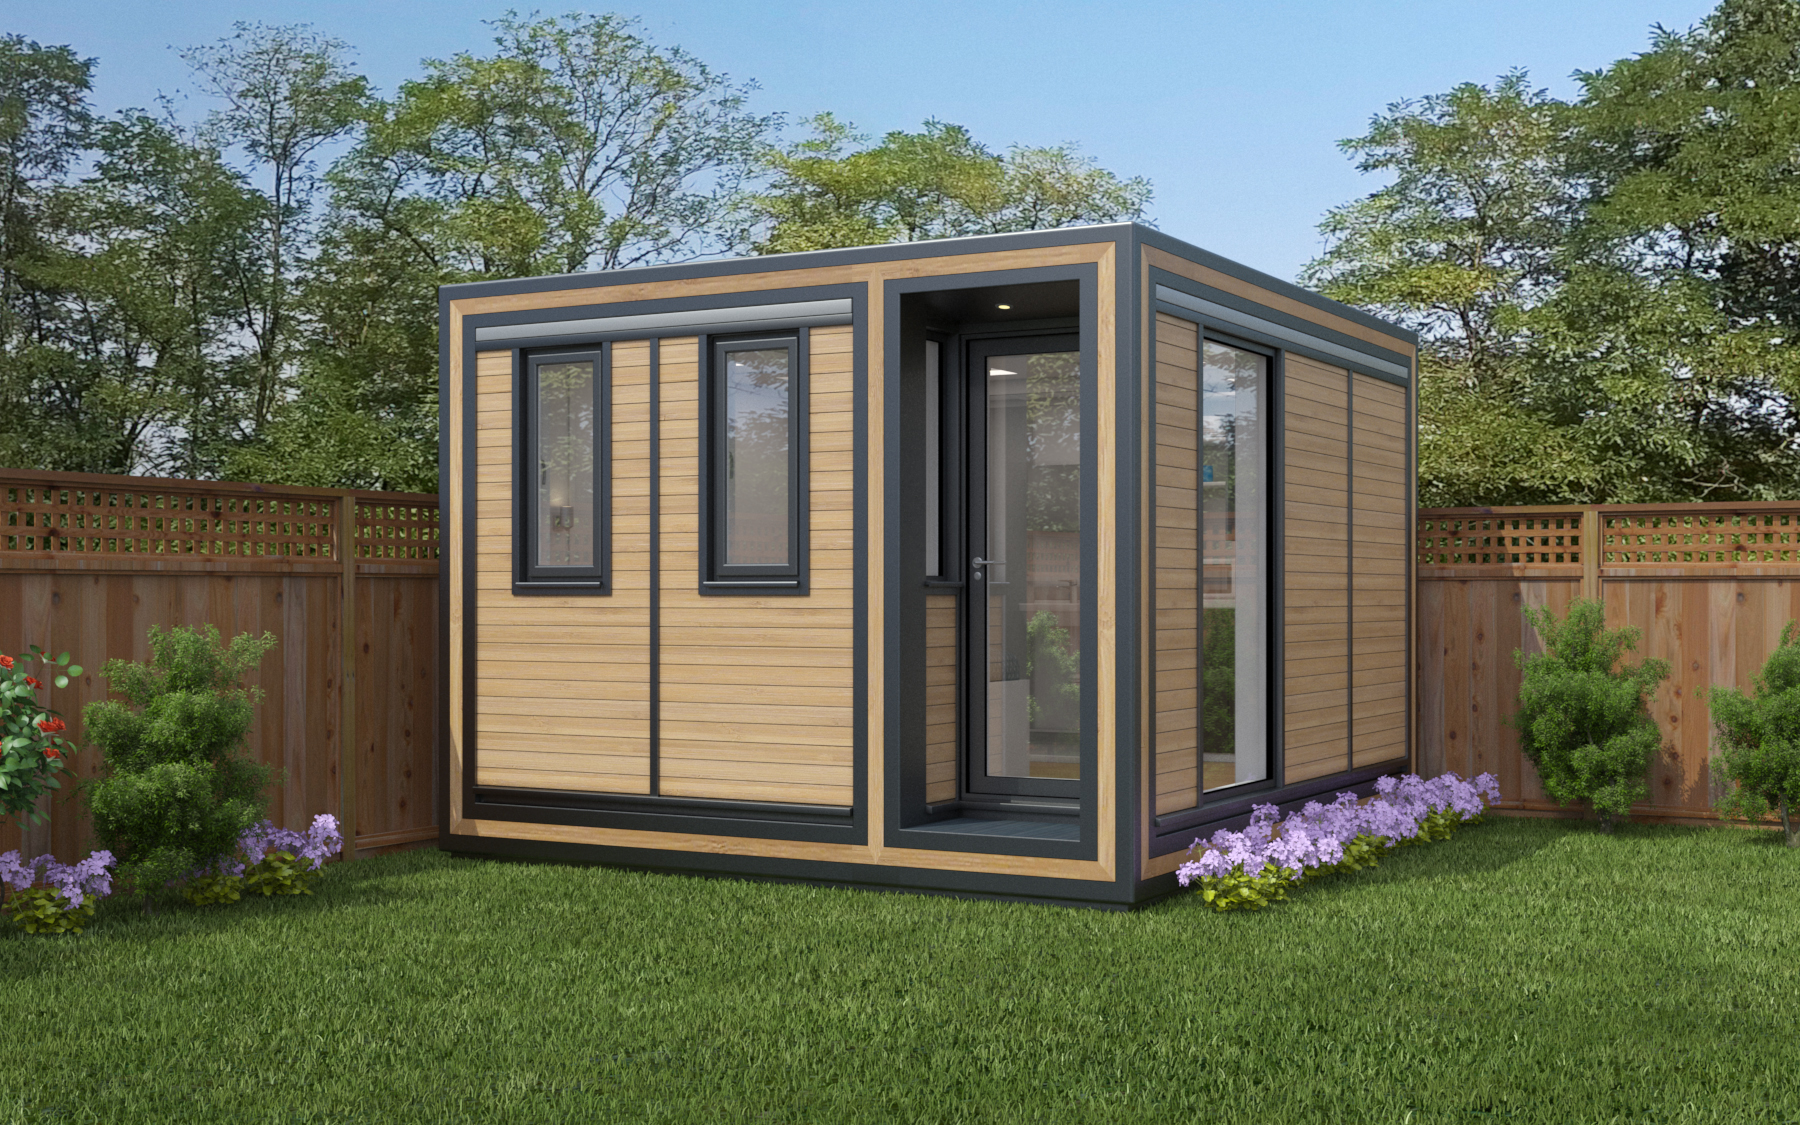 ZEDBOX 335  (3 x 3.5)  Internal Size: 3188 x 3791  External Size: 3658 x 4261  Bed Options: Single or Double  Kitchen Options: Micro or Premier  Wet Room Options: Yes  Portico: Yes  Price:  £26,000    Optional Extras    Request Zedbox Catalogue